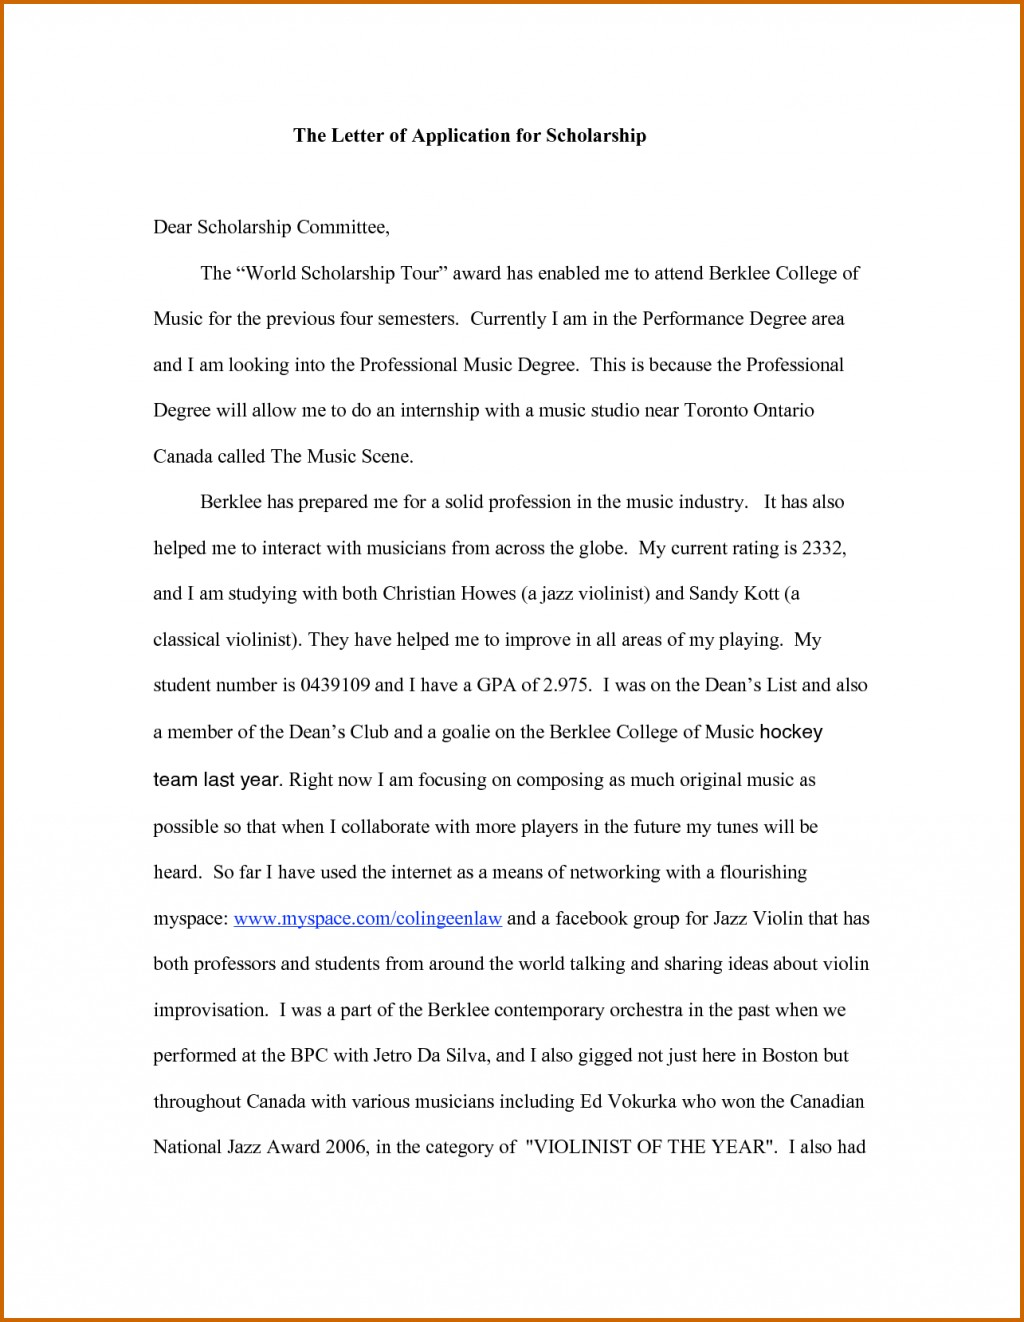 003 How To Write Application For Scholarship Sample Essays Essay Awful High School Seniors 500 Words Large